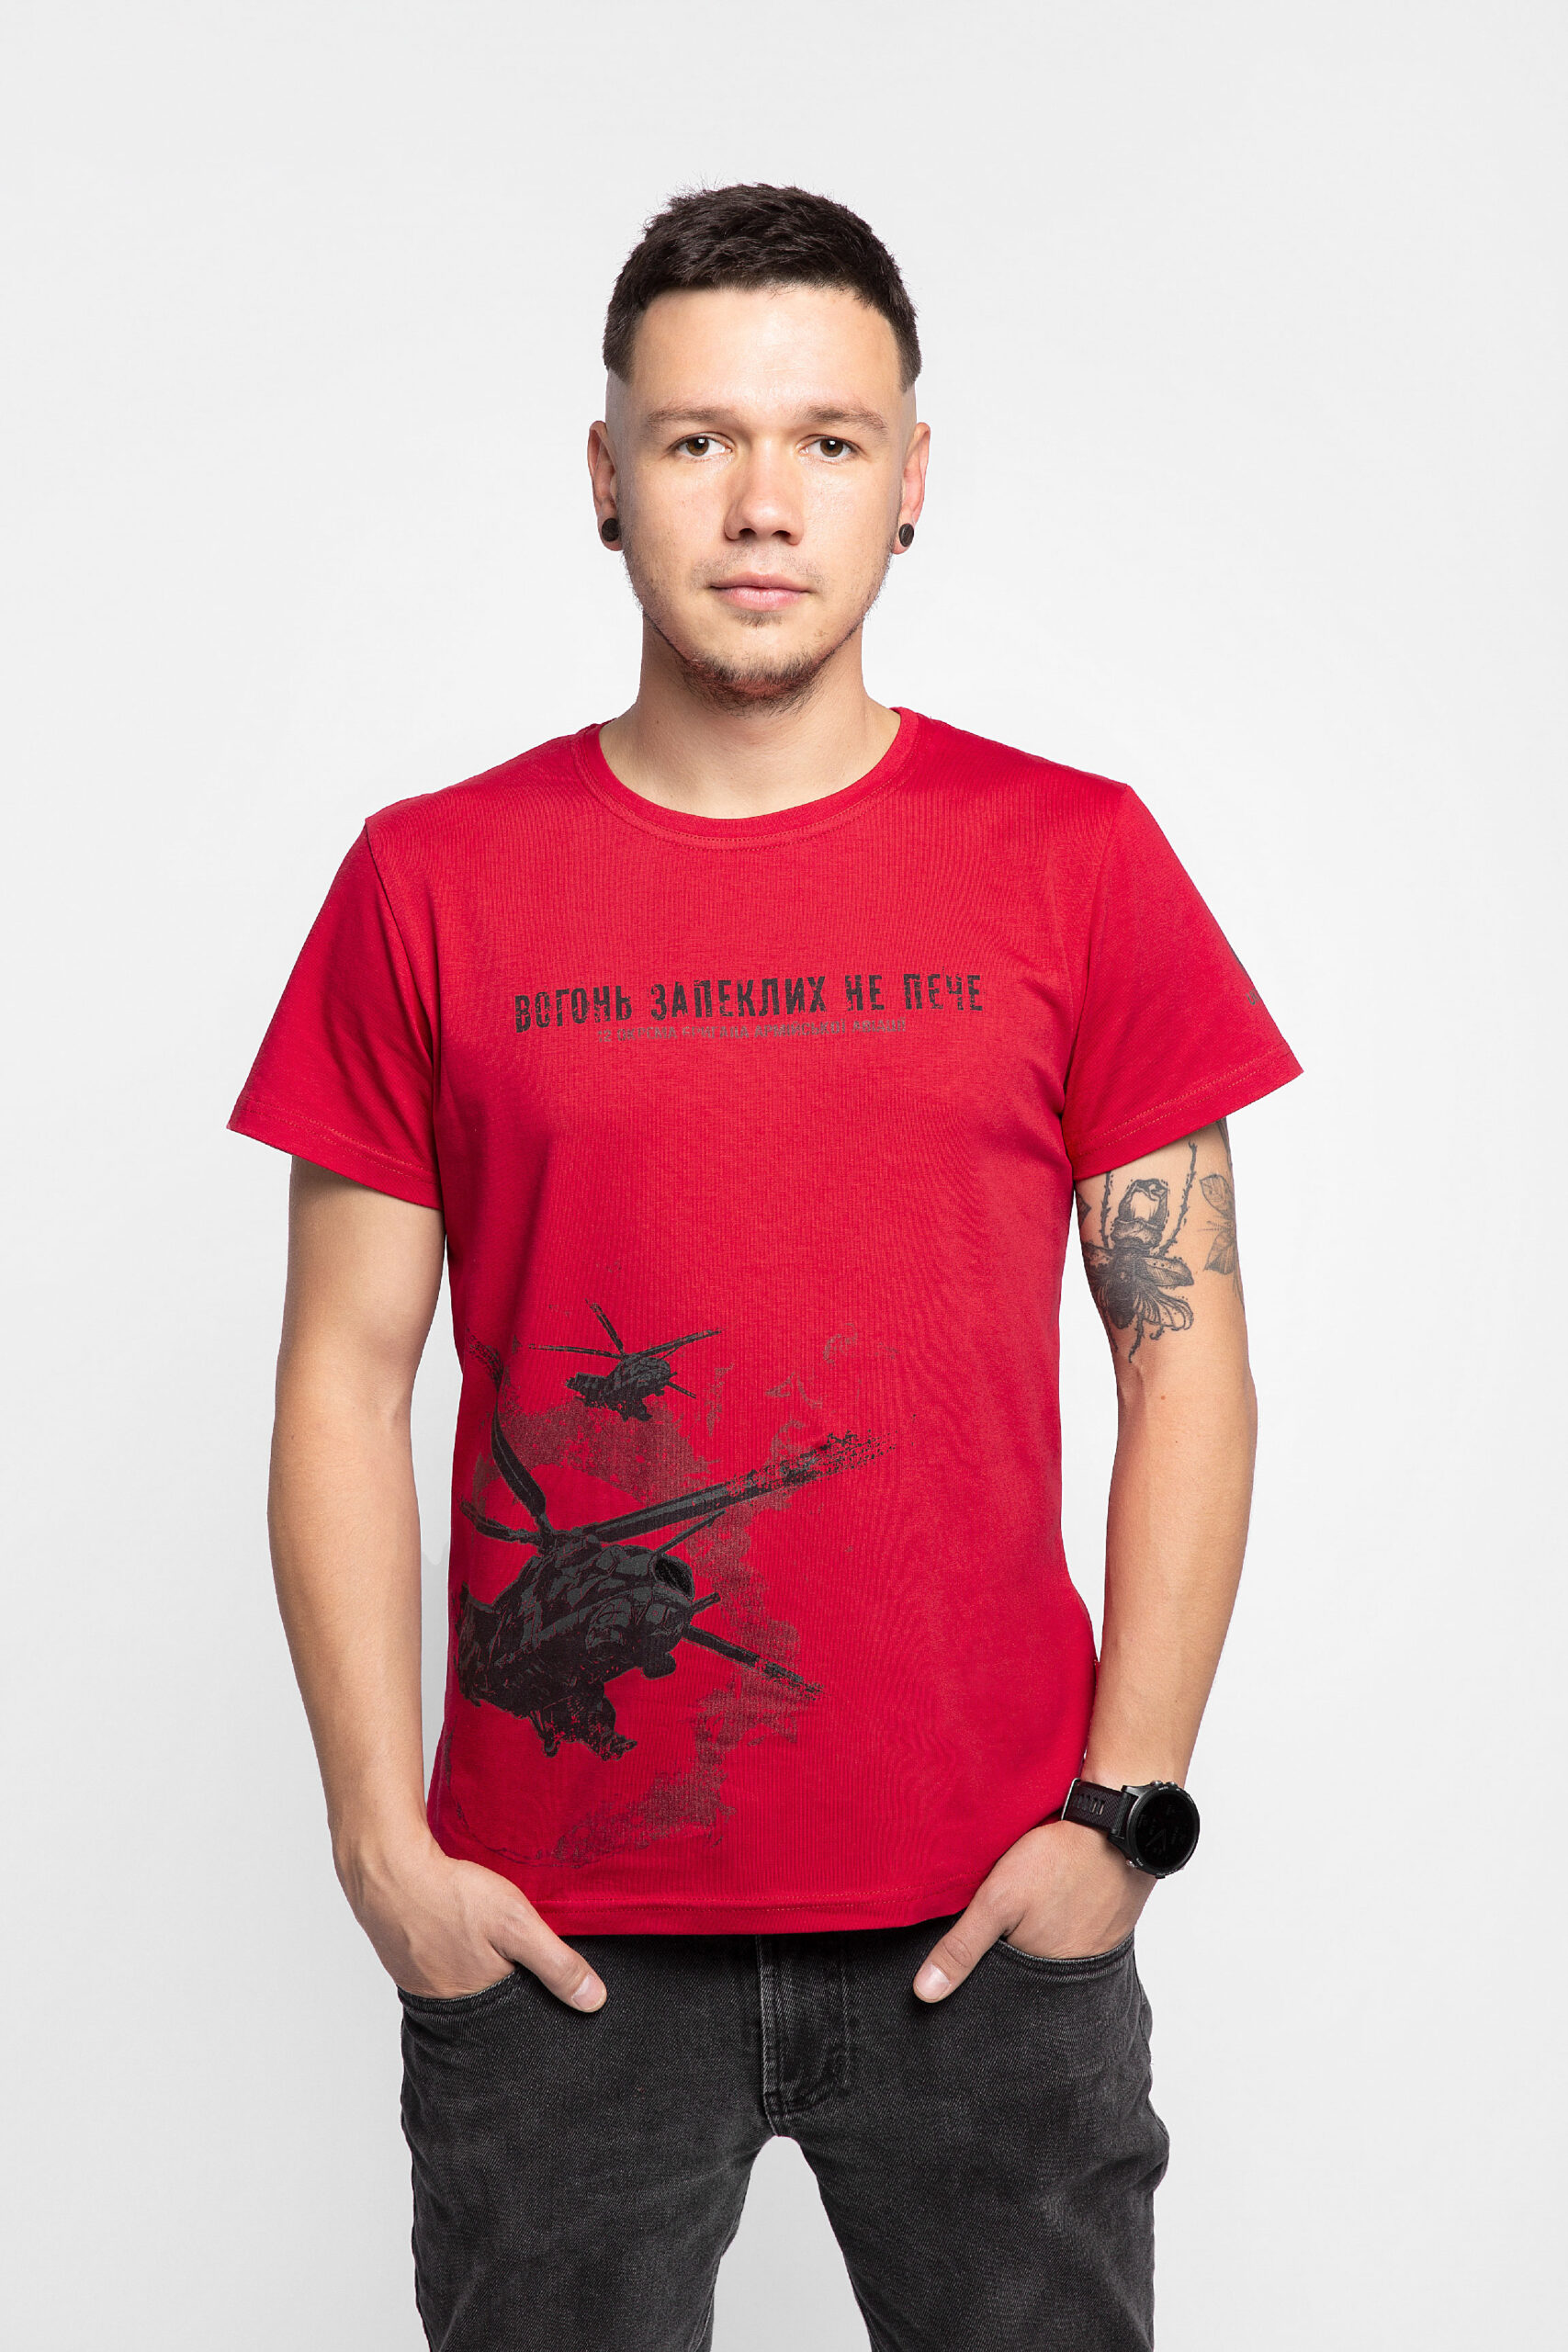 Men'S T-Shirt The Fire Of Fiery 2.0. Color red. The T-Shirt will fly to you from 10.